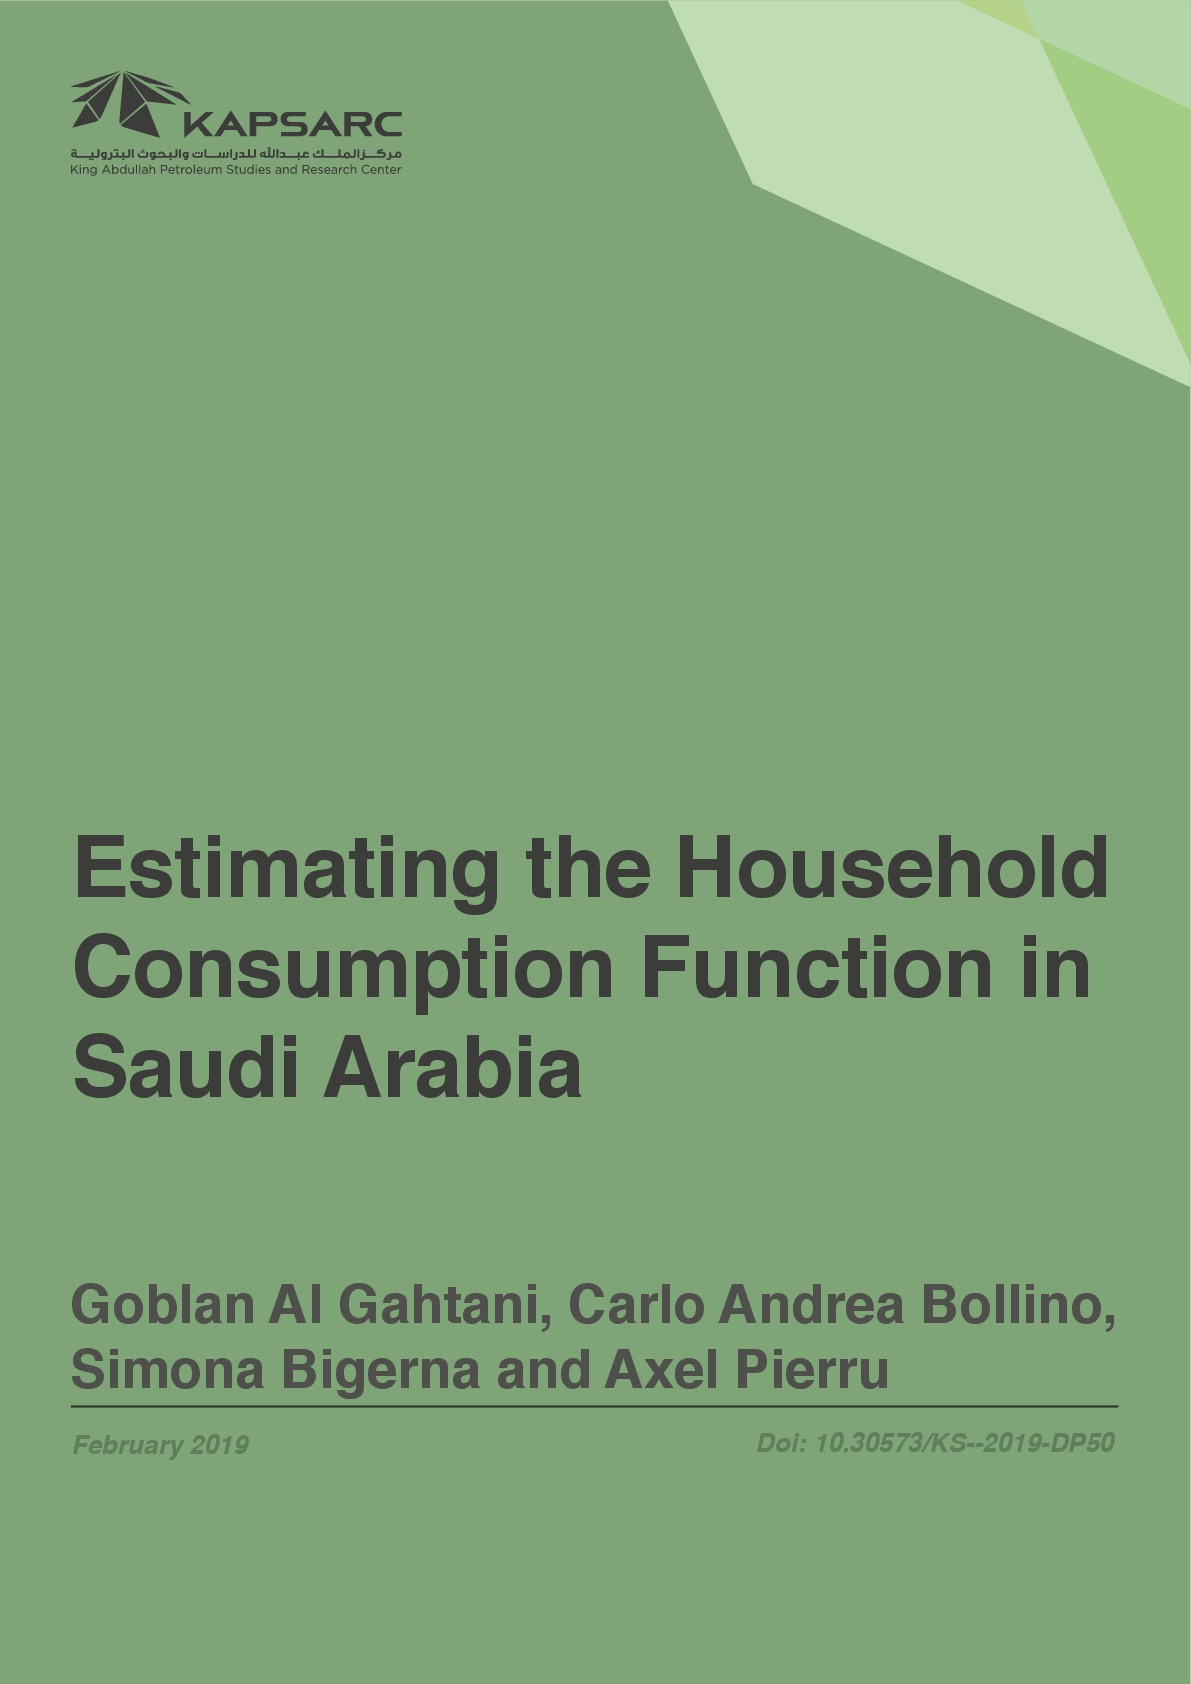 Estimating the Household Consumption Function in Saudi Arabia